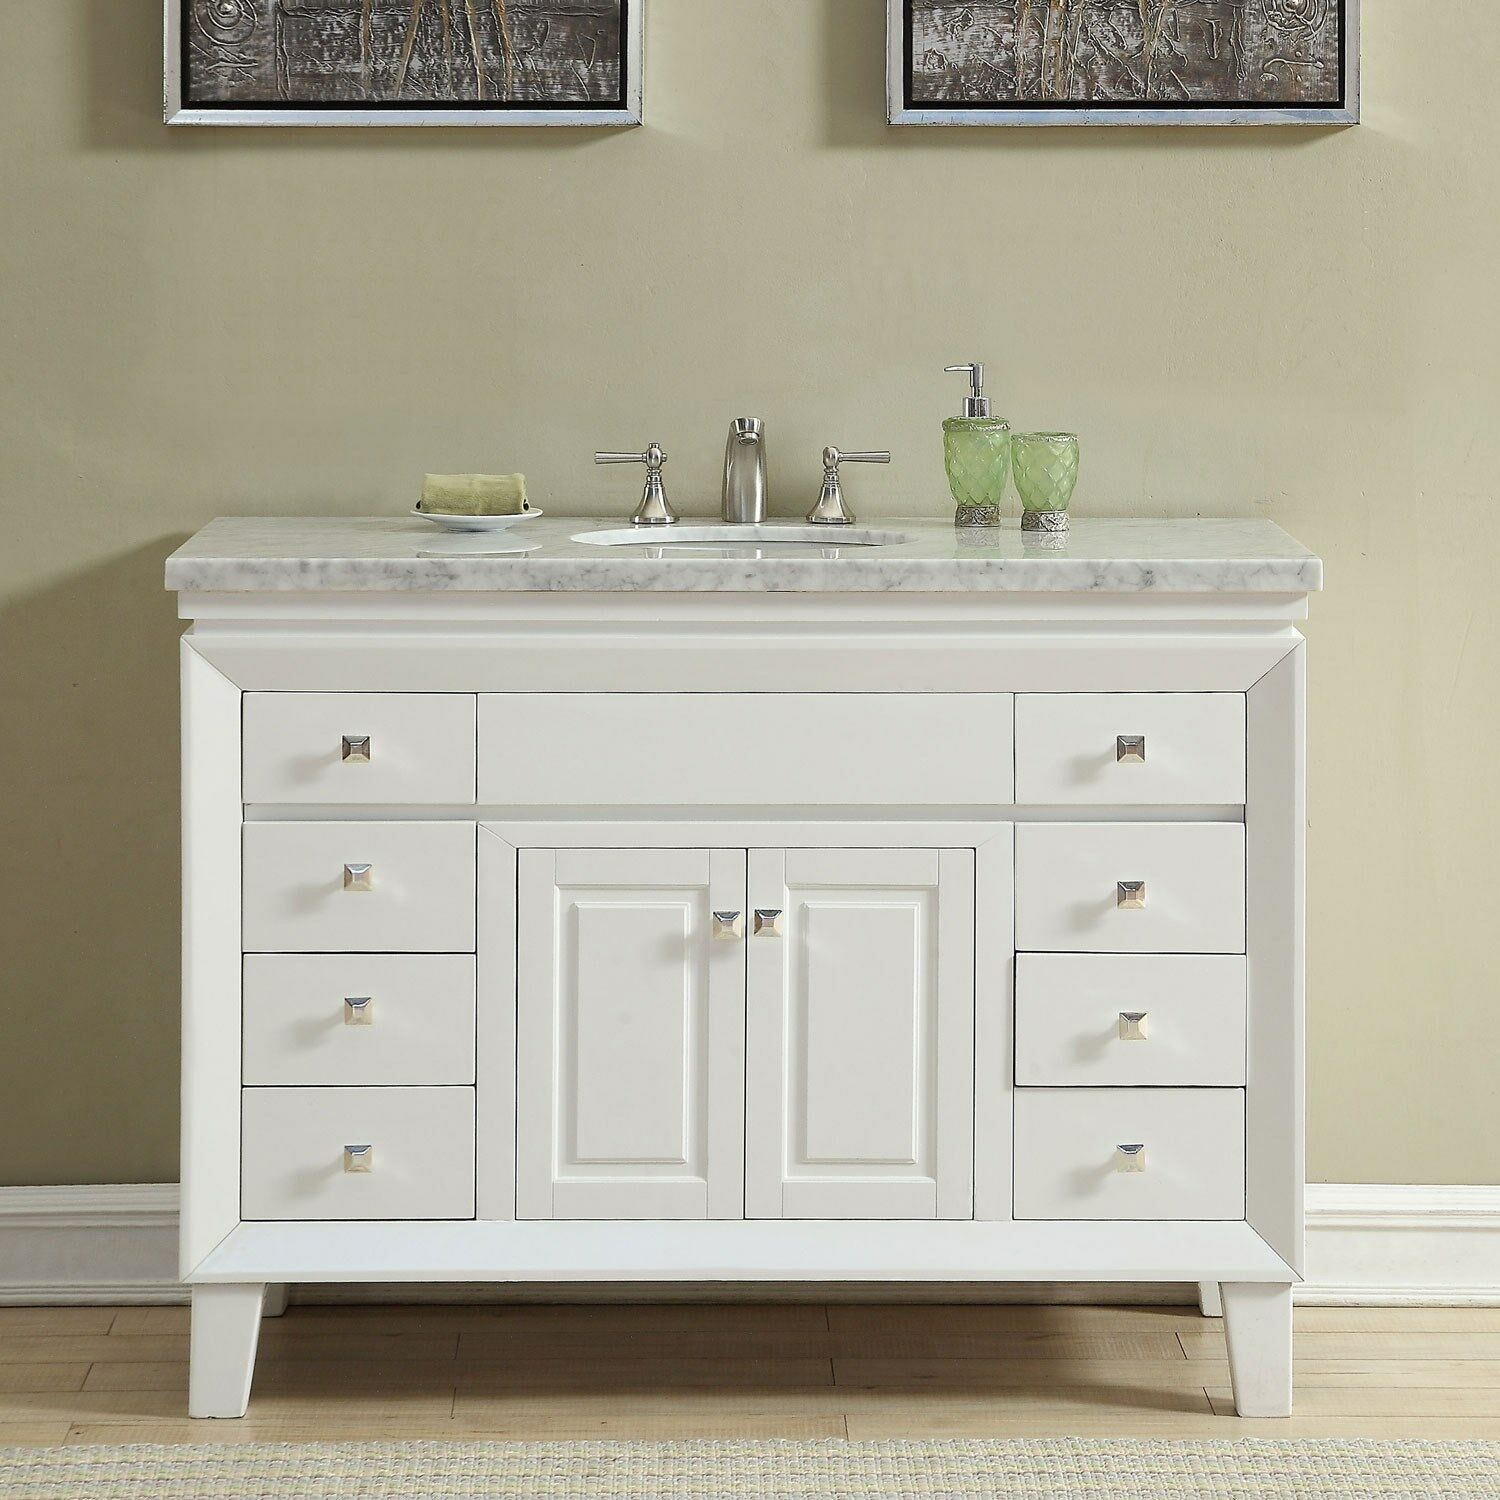 Details About 48 Inch Off White Carrara Marble Top Bathroom Vanity Single Sink Cabinet 0318w regarding size 1500 X 1500